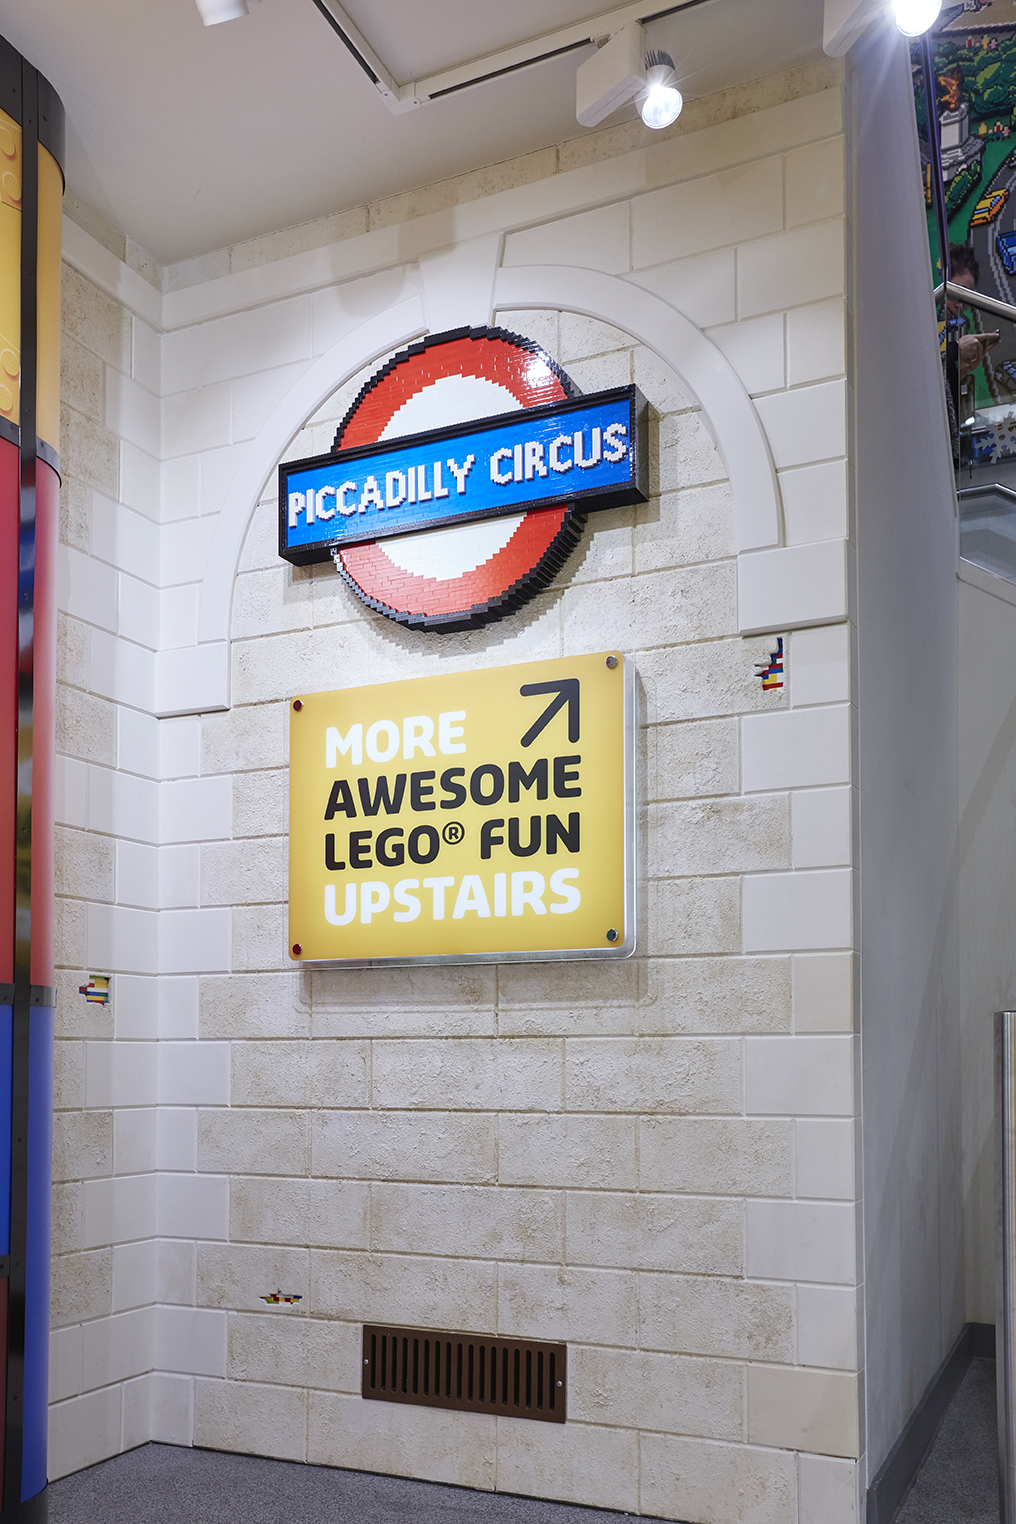 Piccadilly Circus tube station LEGO sign with illuminated directional signage below